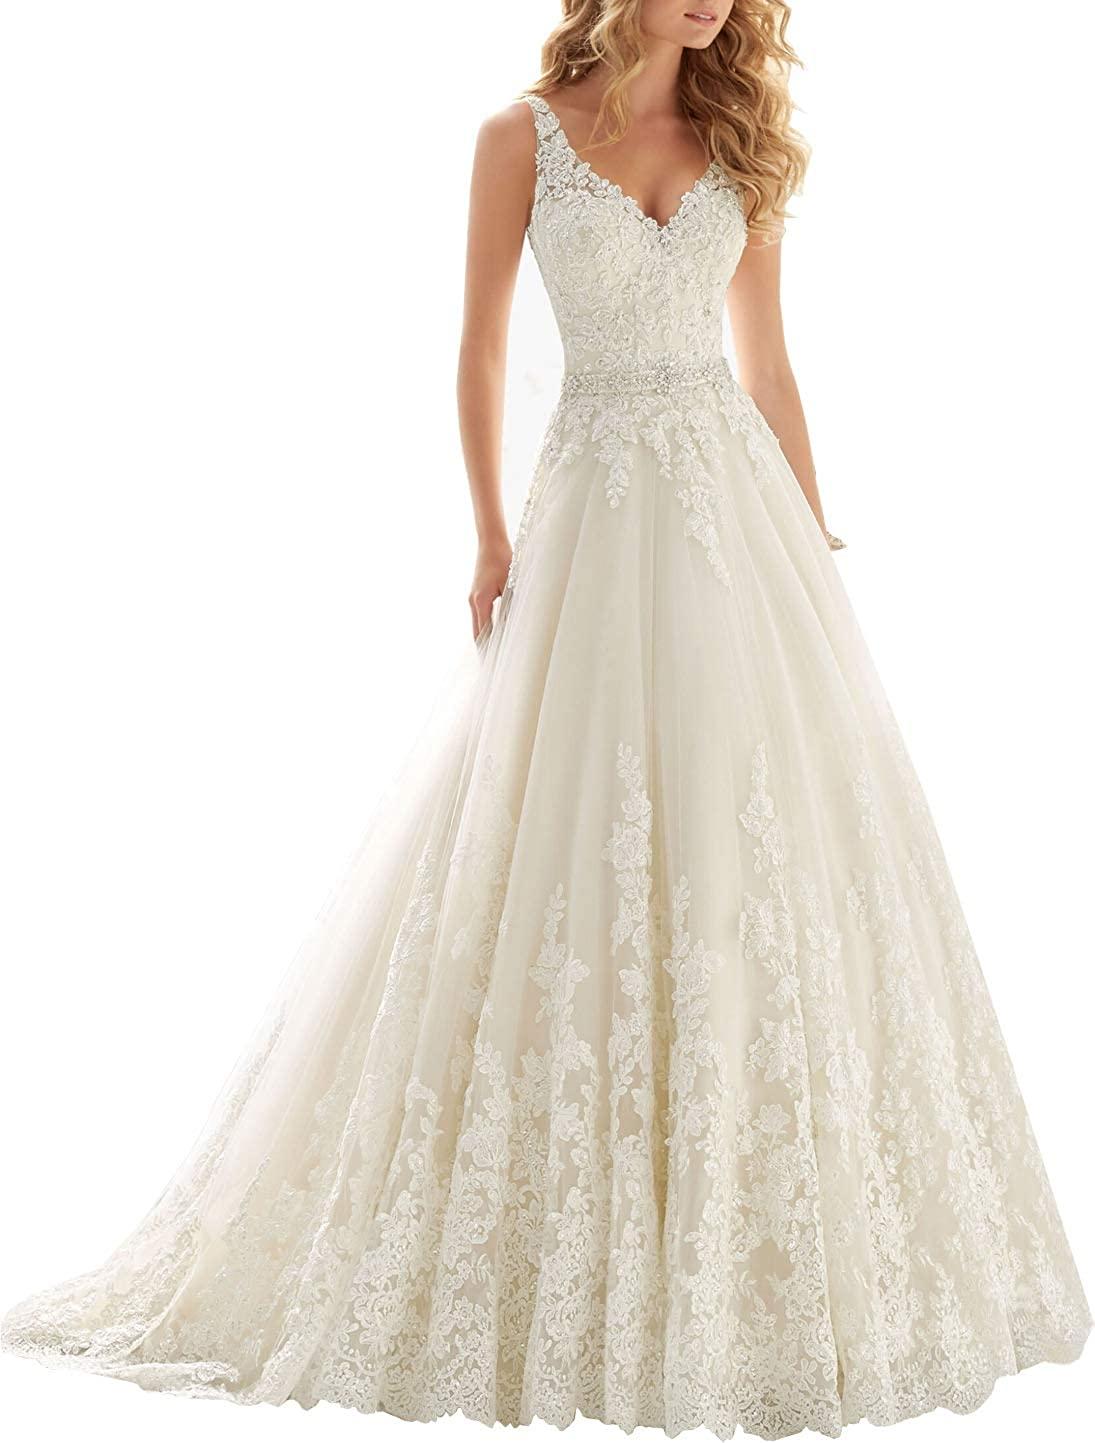 Lace Appliques Wedding Dresses for Bride V Neck Beaded Straps Bridal Gown  Long 20 for Women